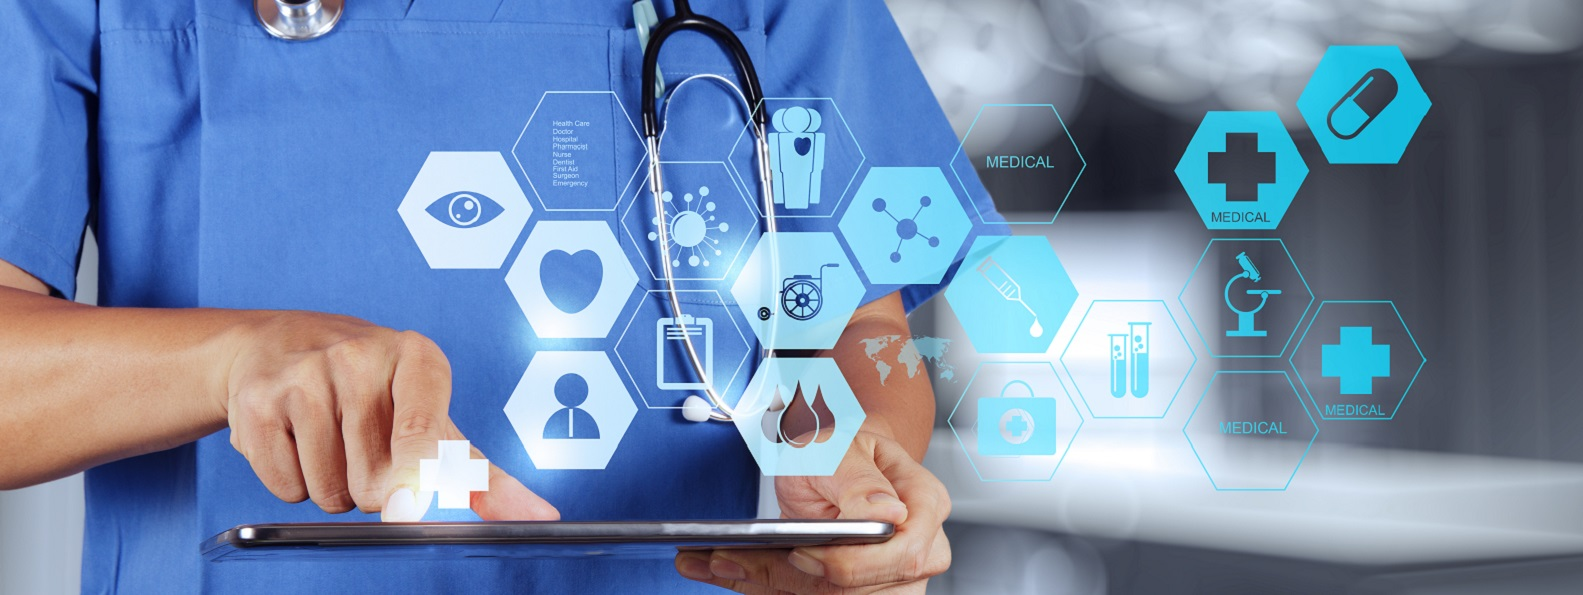 doctor using ipad for digital health automation